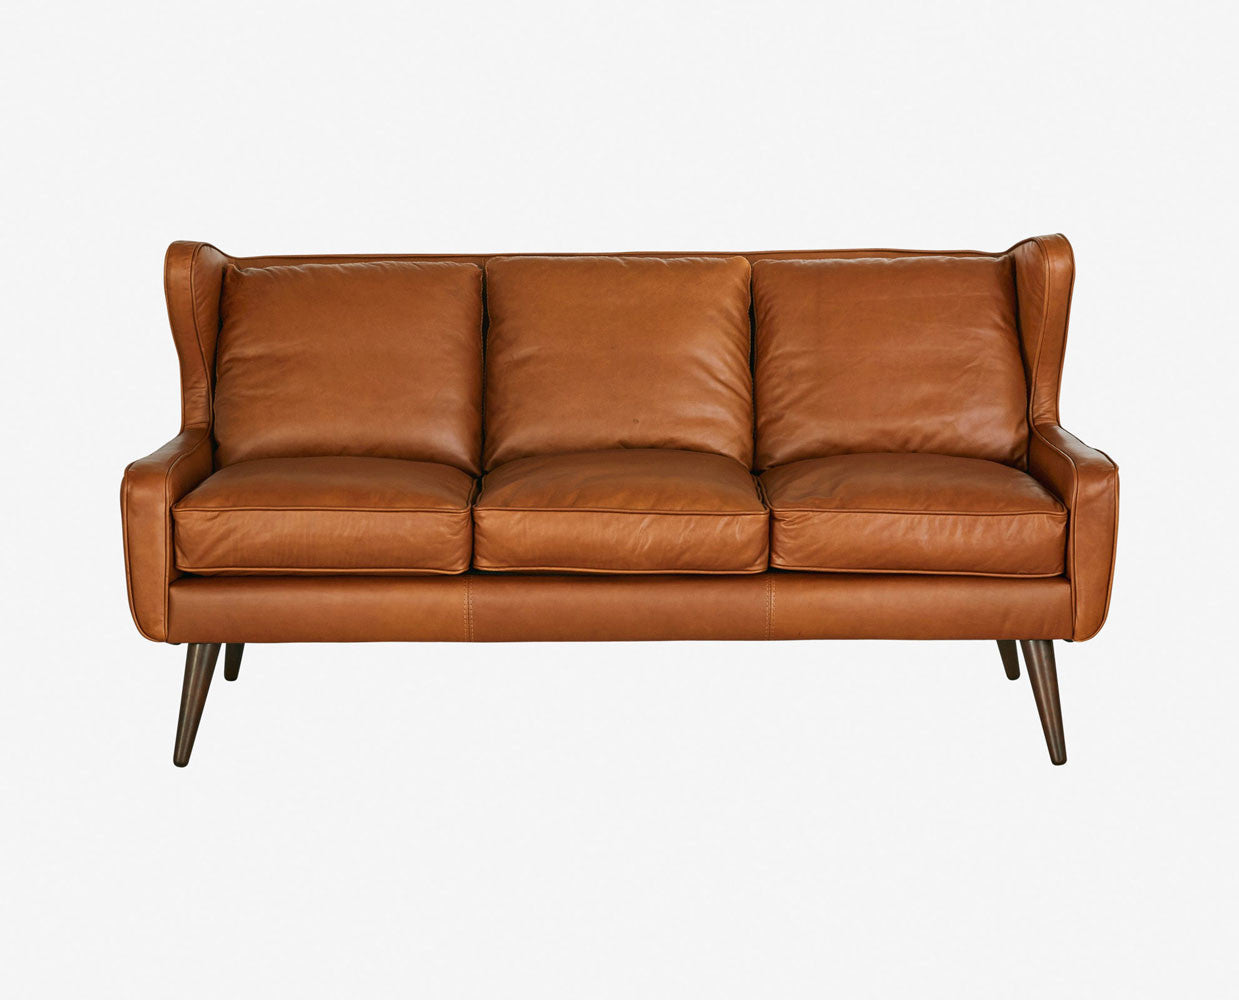 Luxury modern leather sofa